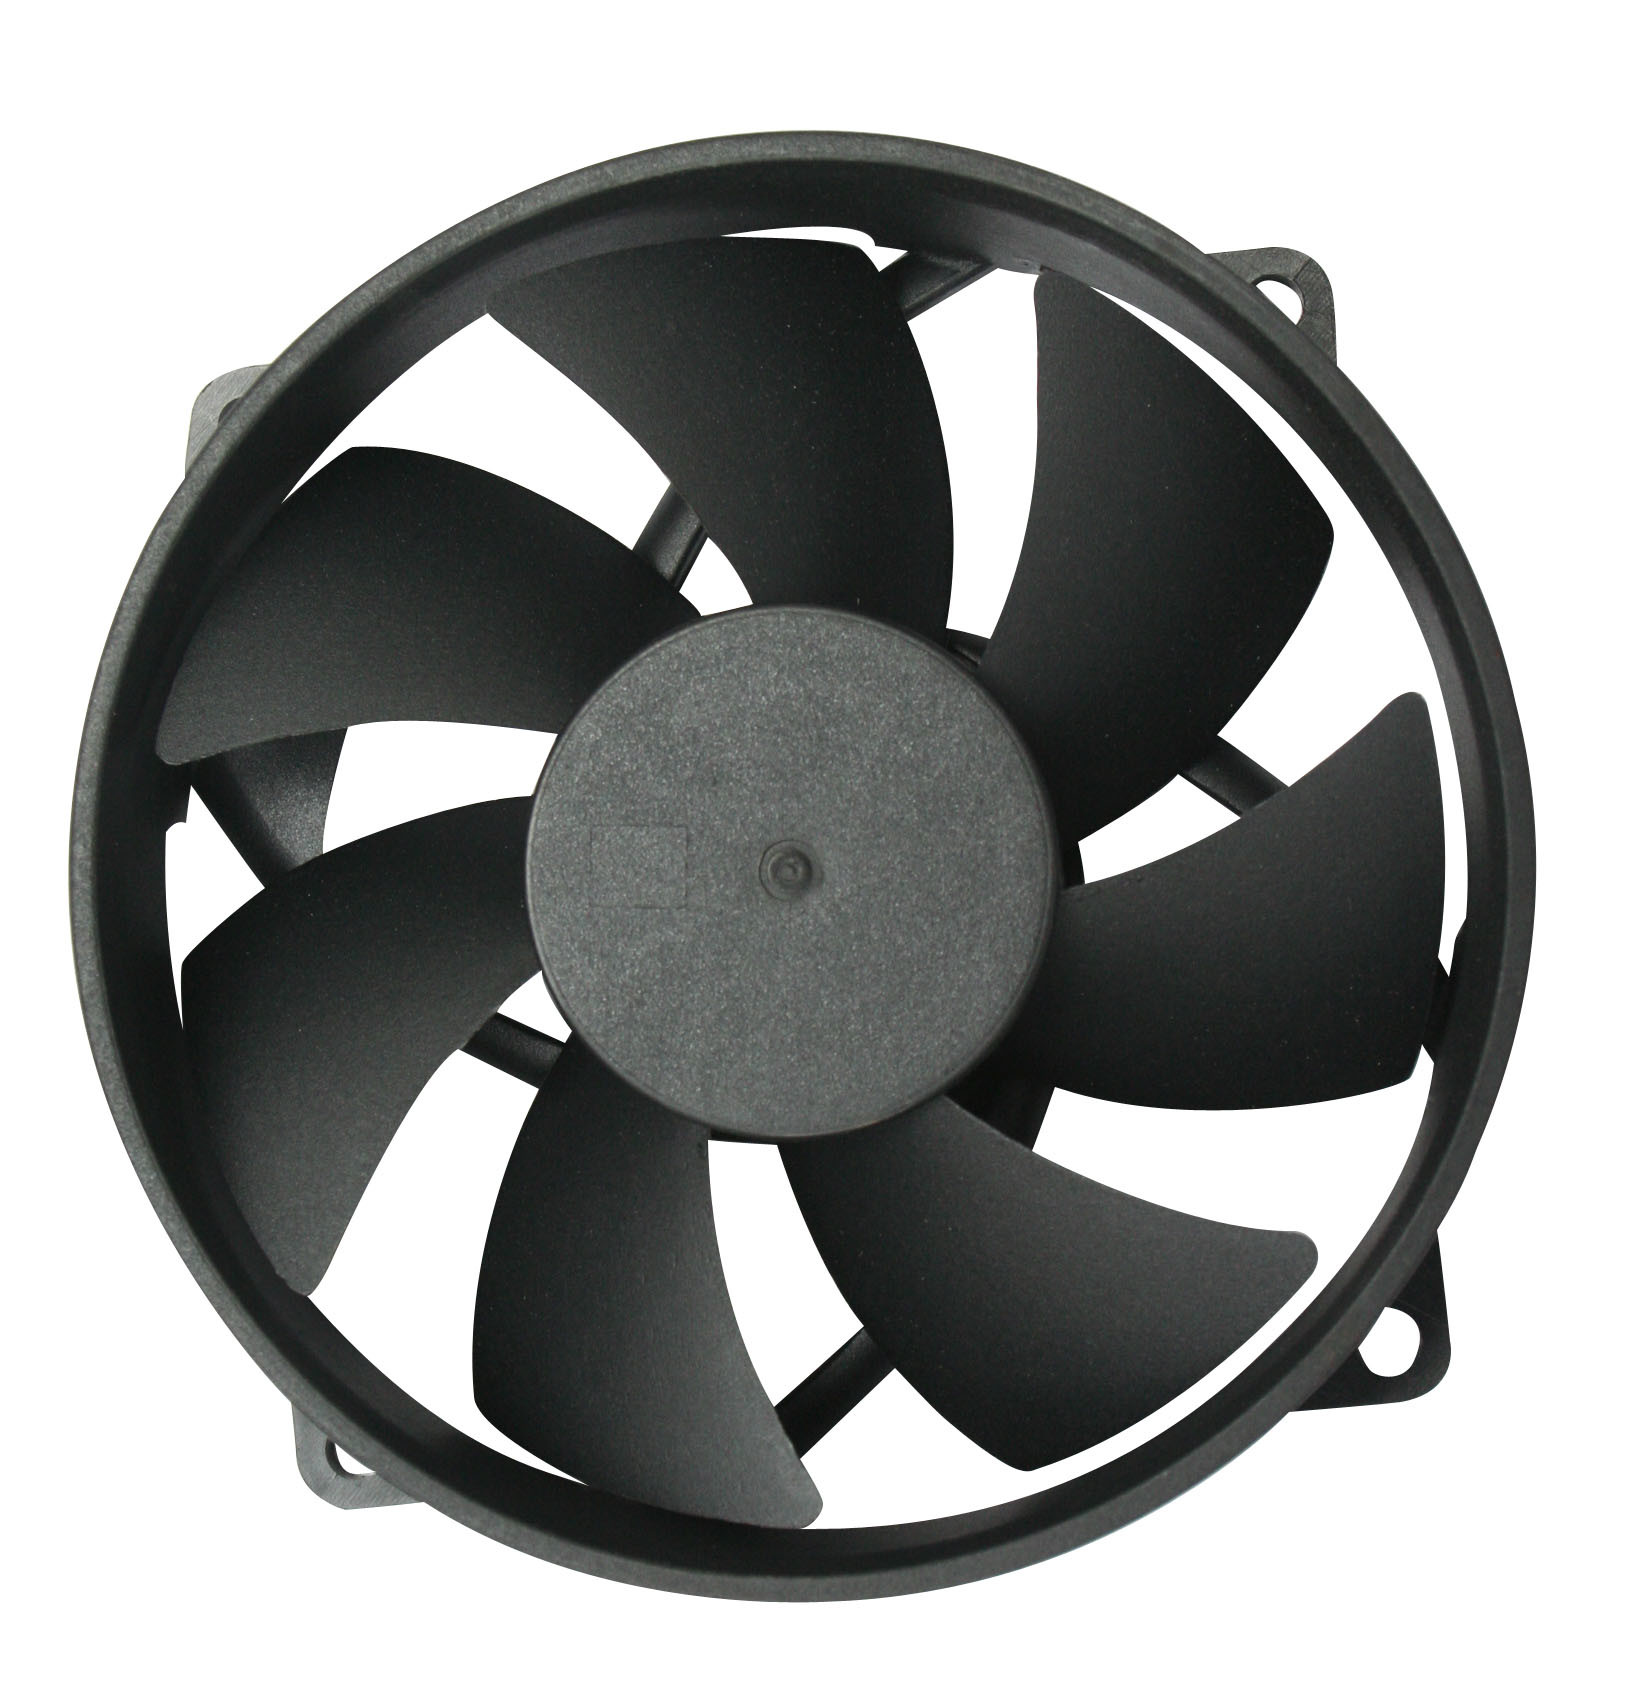 China 92*25 DC Cooling Fan (DC 9225) China Cooling Fan Dc Fan #6A6B60